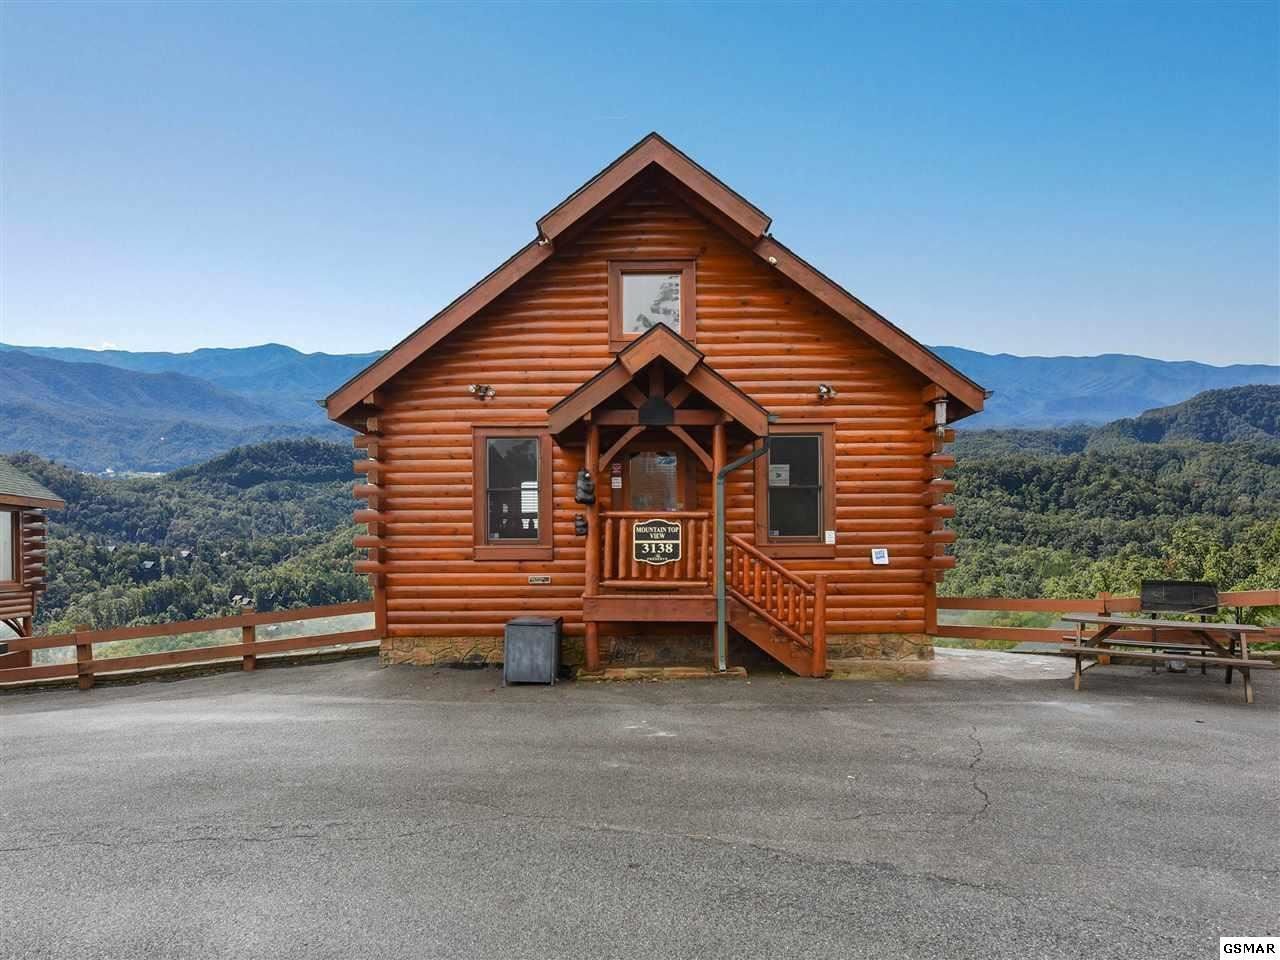 Photo of 3138 Lakeview Lodge Drive, Sevierville, TN 37862 (MLS # 1132837)